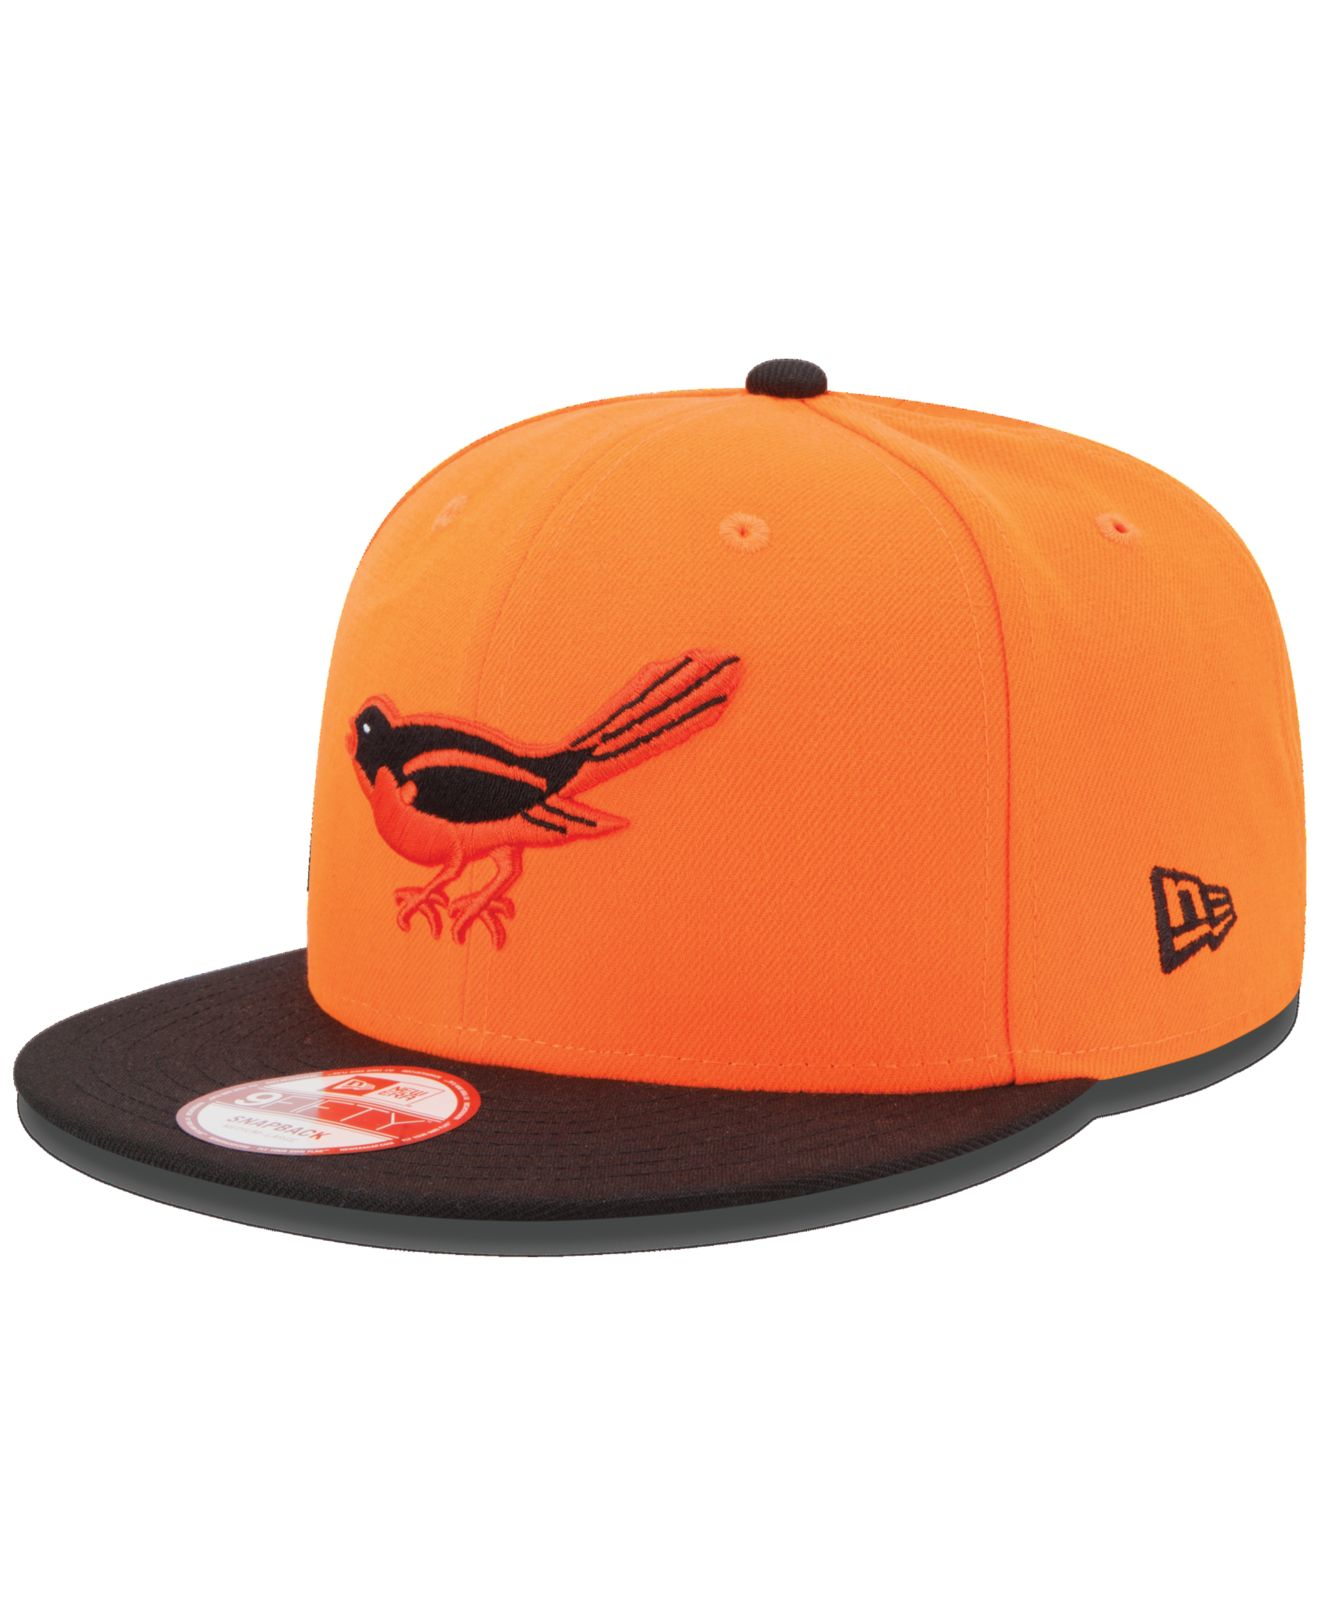 size 40 523a0 3e2ed Lyst - KTZ Baltimore Orioles All Star Patch 9fifty Snapback Cap in ...